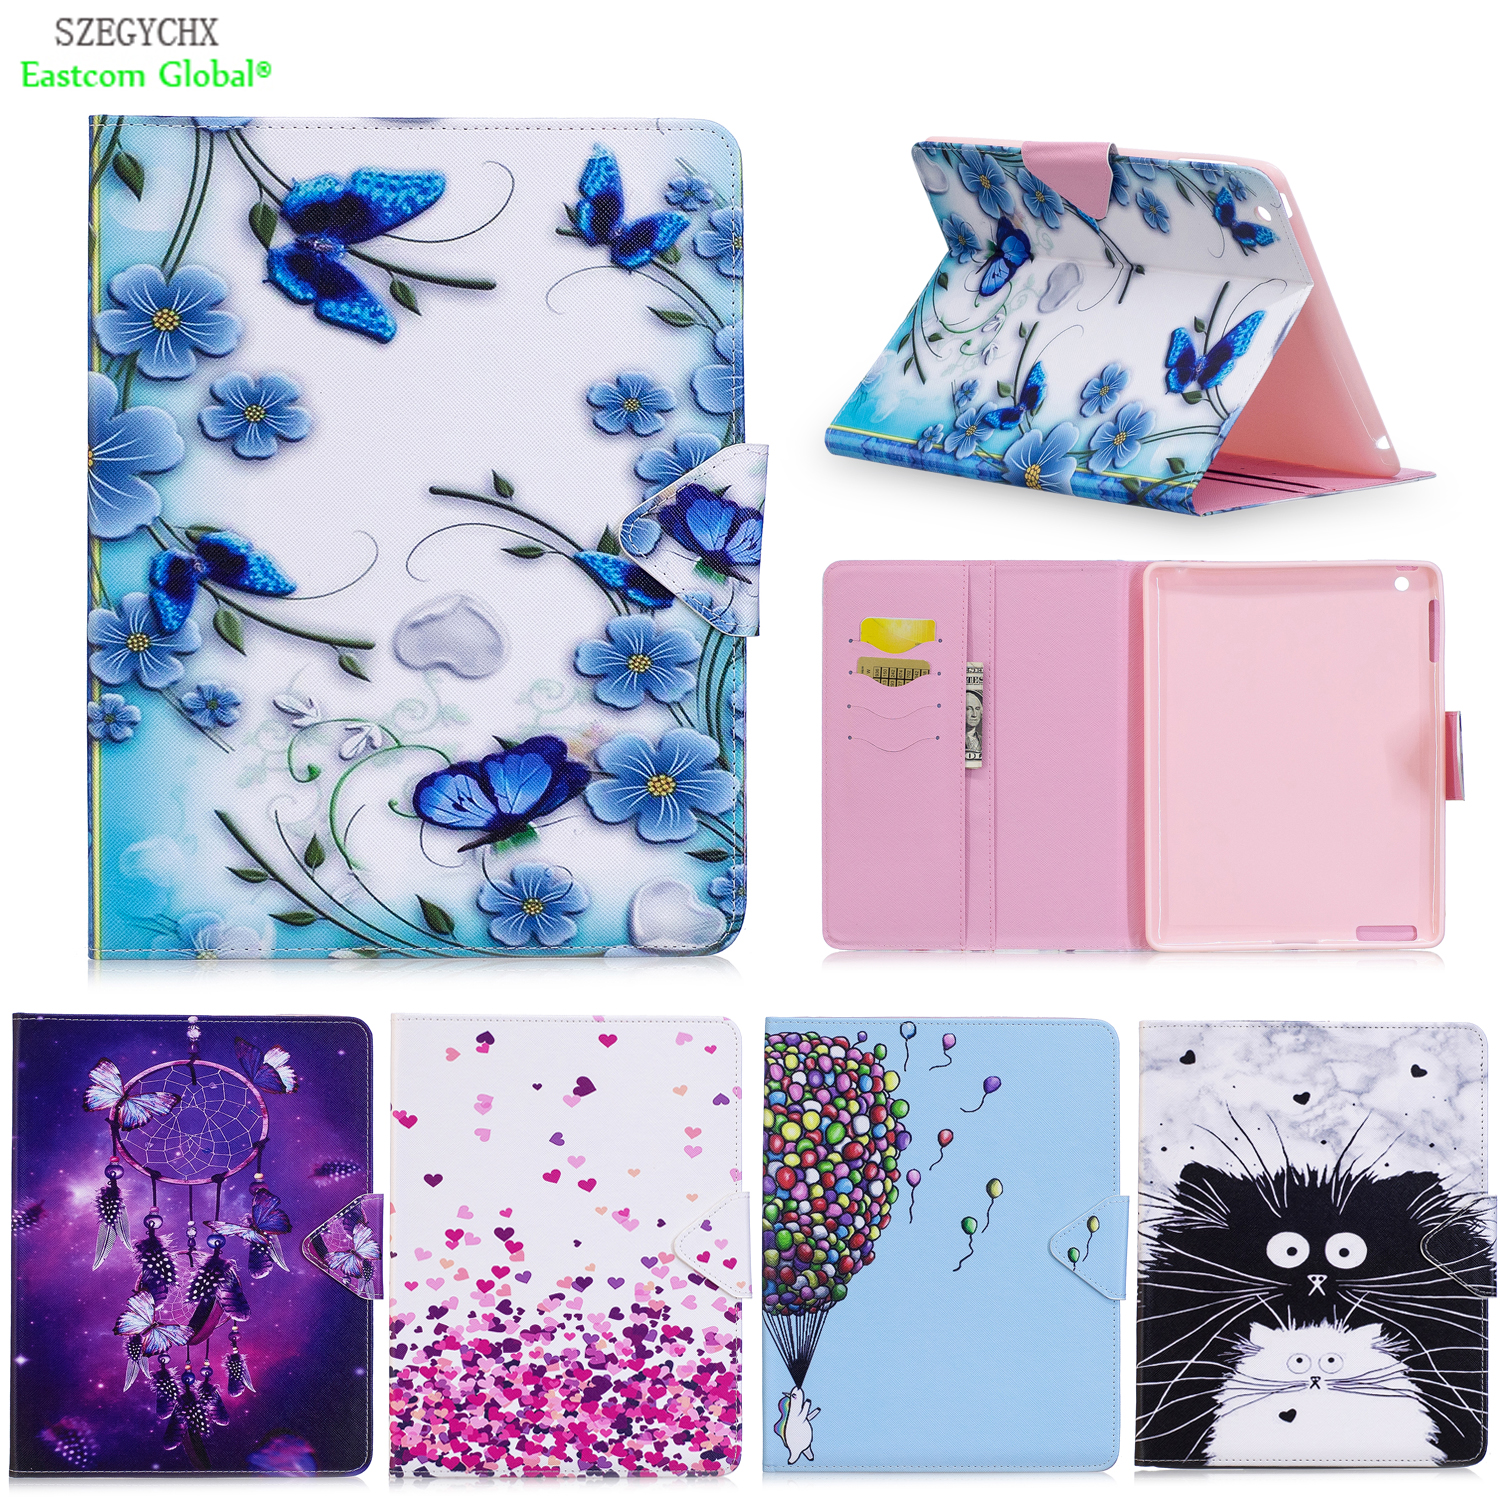 Cover For iPad 234,SZEGYCHX PU Leather Smart Stand Shell Tablet Case For ipad 4 2 3,9.7 inch with Auto Wake Up/Sleep tablet case cover for ipad air 1 szegychx shockproof retina smart case slim designer pu protetive cover for ipad 5